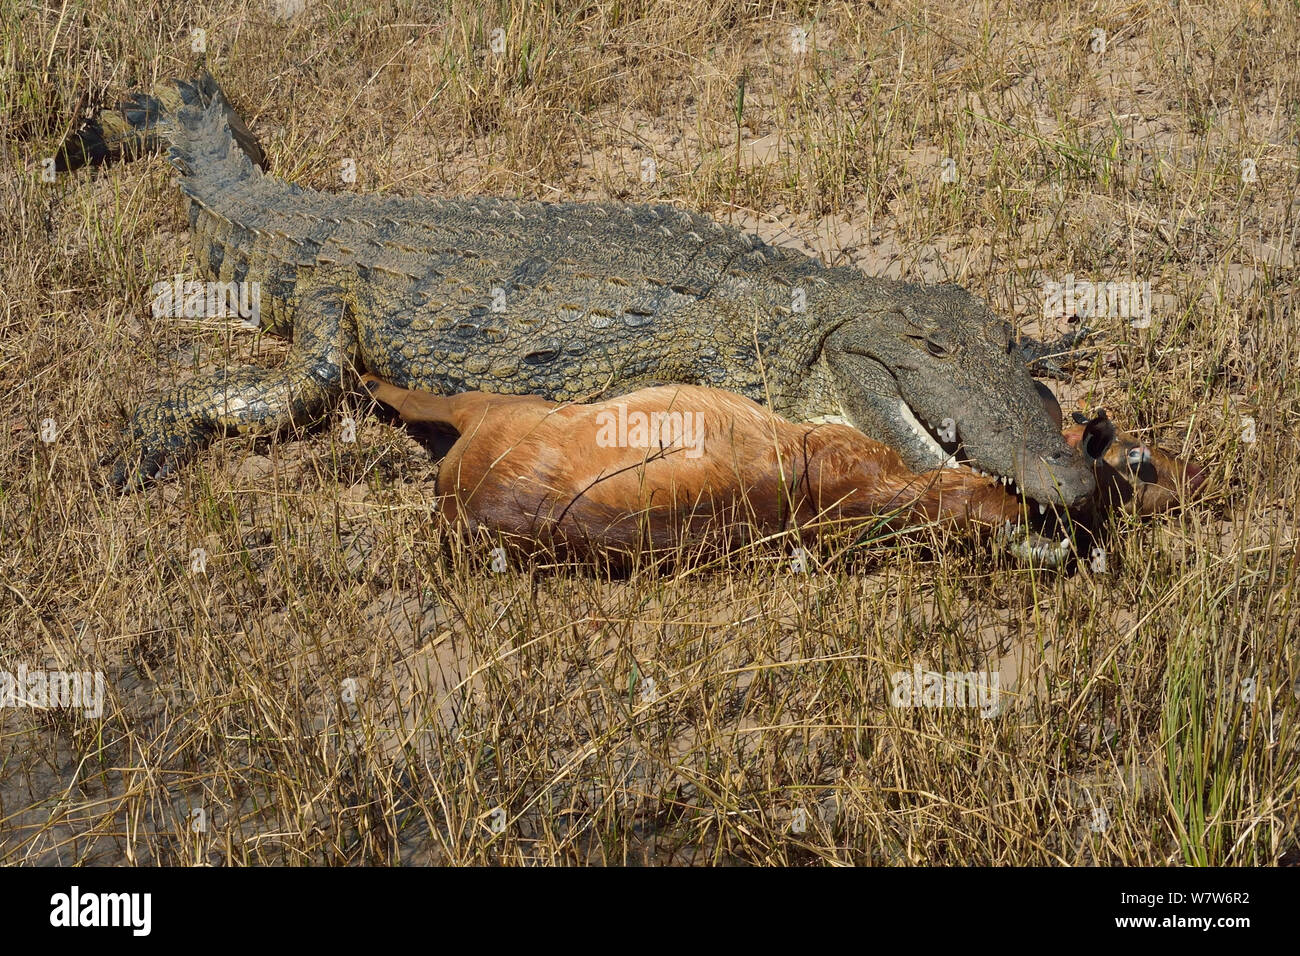 Nile crocodile (Crocodylus niloticus) with mouth clasped round young Impala (Aepyceros melampus) ram for more than 2 hours after taking it, Chobe River, Botswana, May. Stock Photo